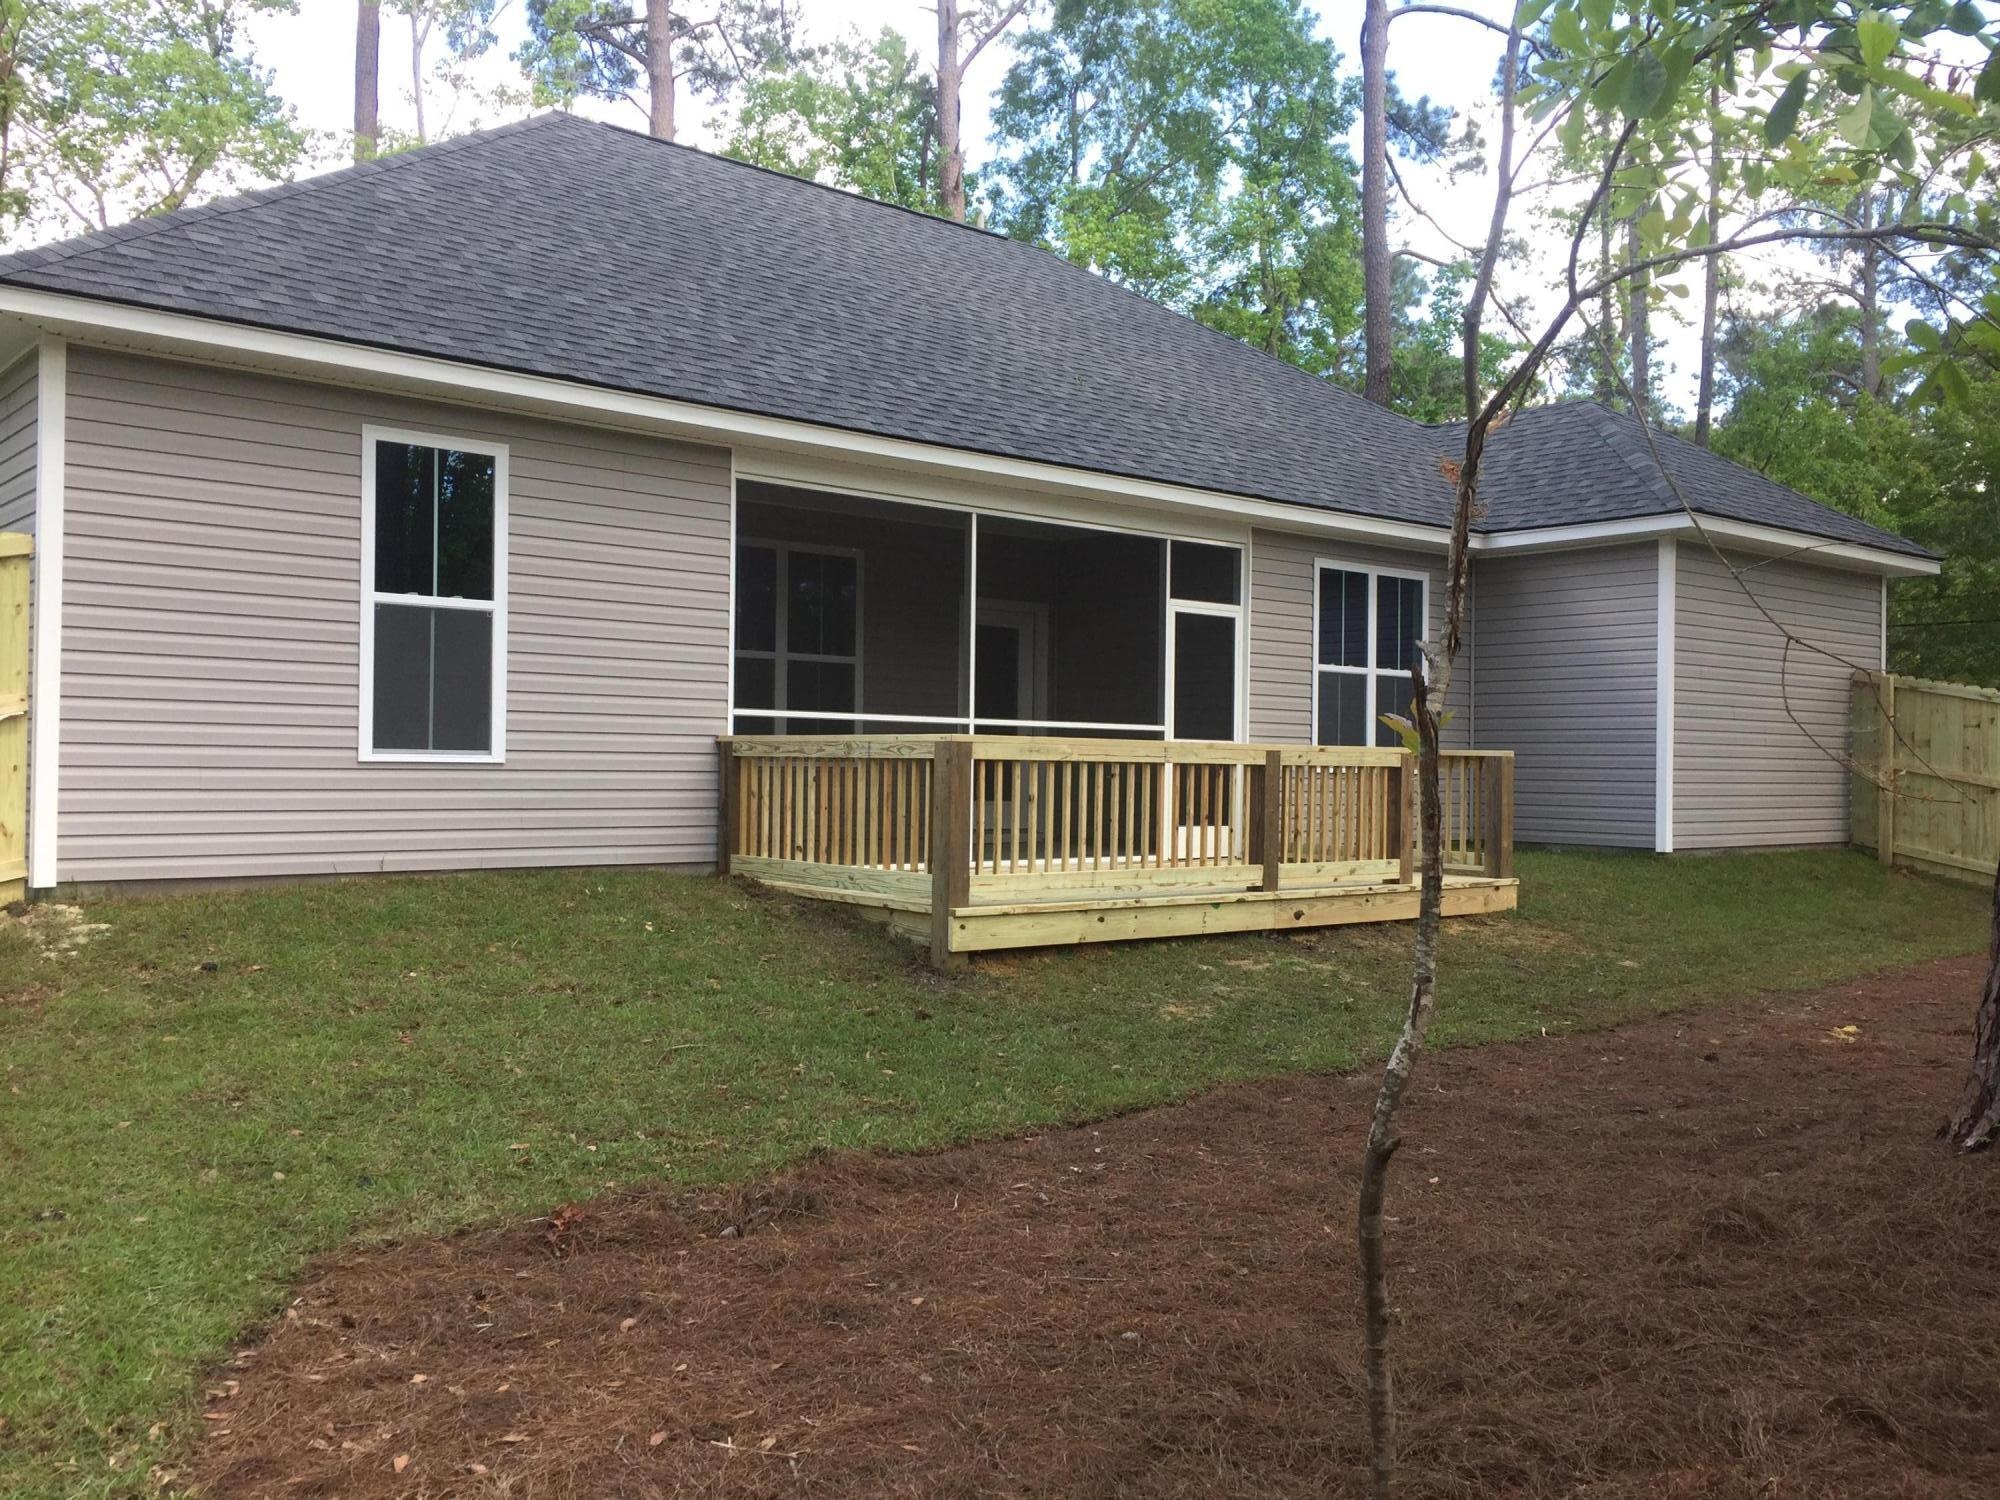 Summerville Heights Homes For Sale - 101 Mary, Summerville, SC - 9